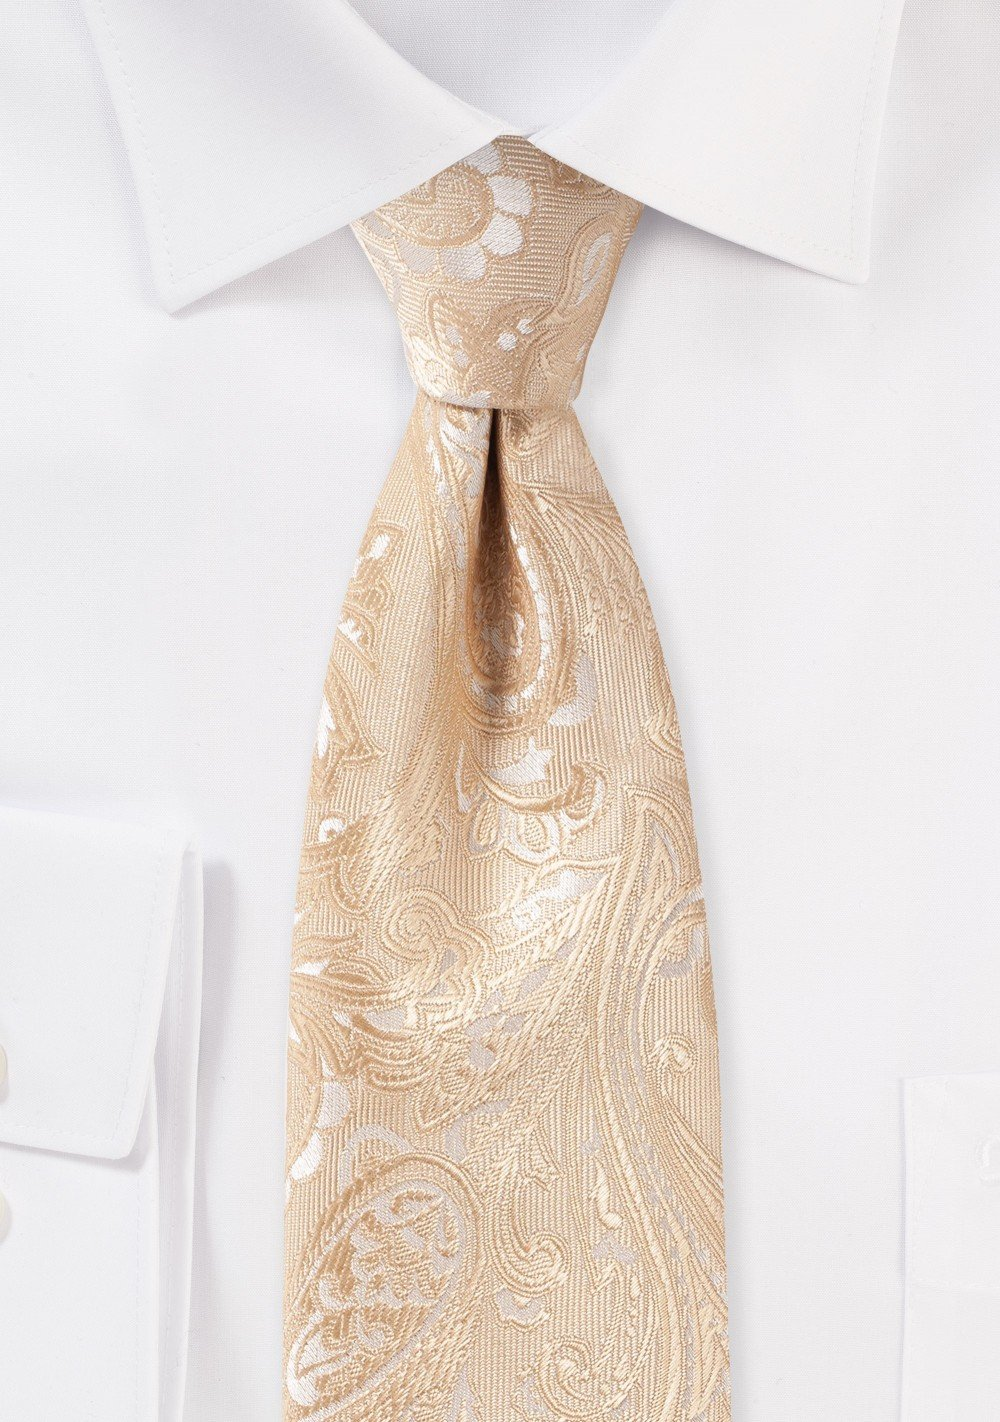 Formal Paisley Tie in Golden Champagne